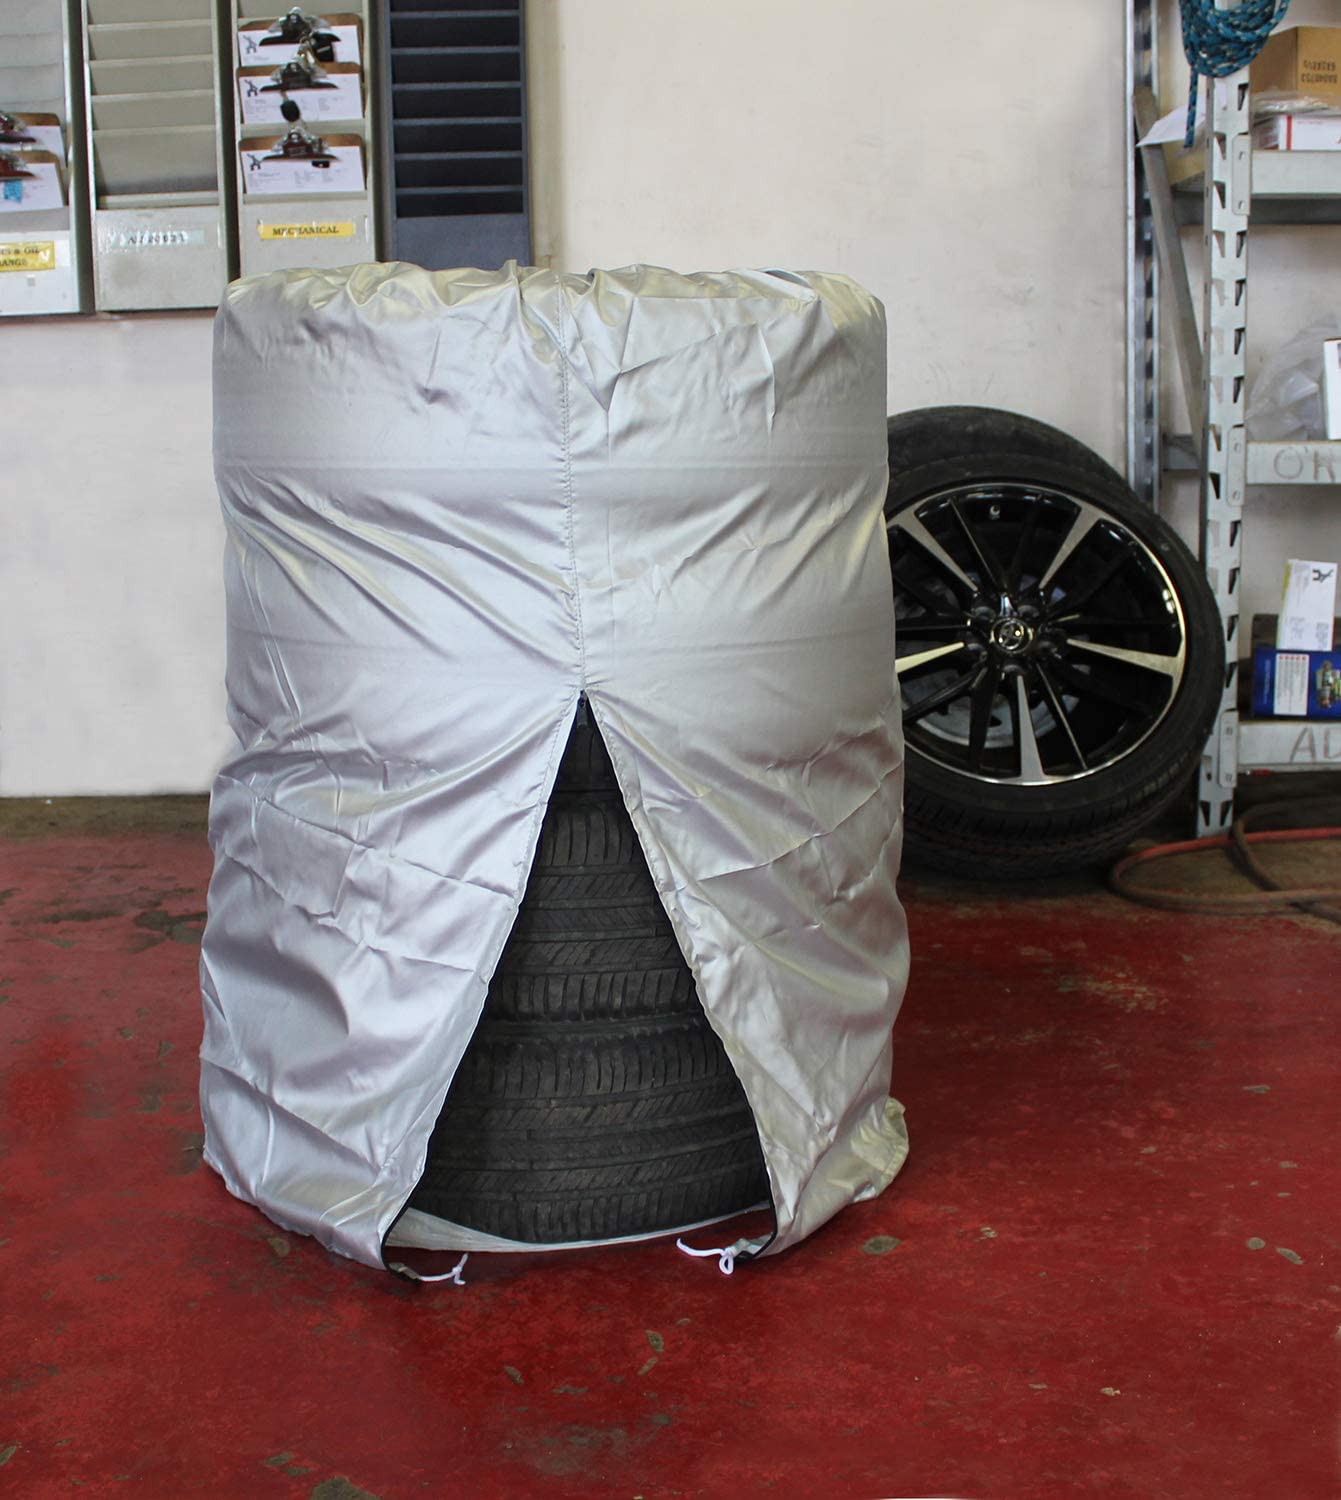 4 Tires Up to 25in Diameter Tire Storage Bag Seasonal Spare Snow Tire Bag Medium 25in x 38in ABN Car Tire Cover